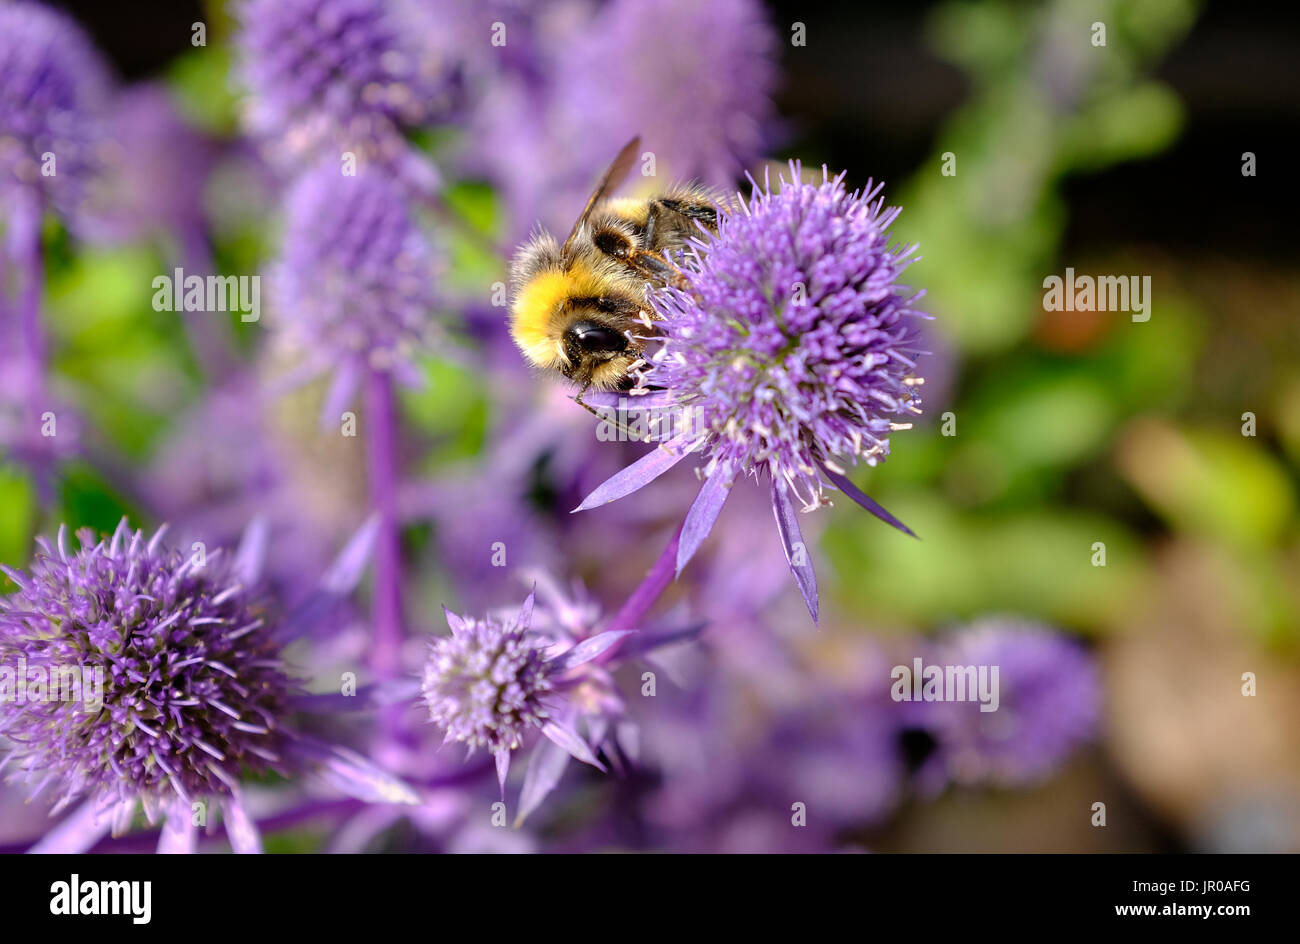 honey bee on flowering blue glitter sea holly type of plant - Stock Image